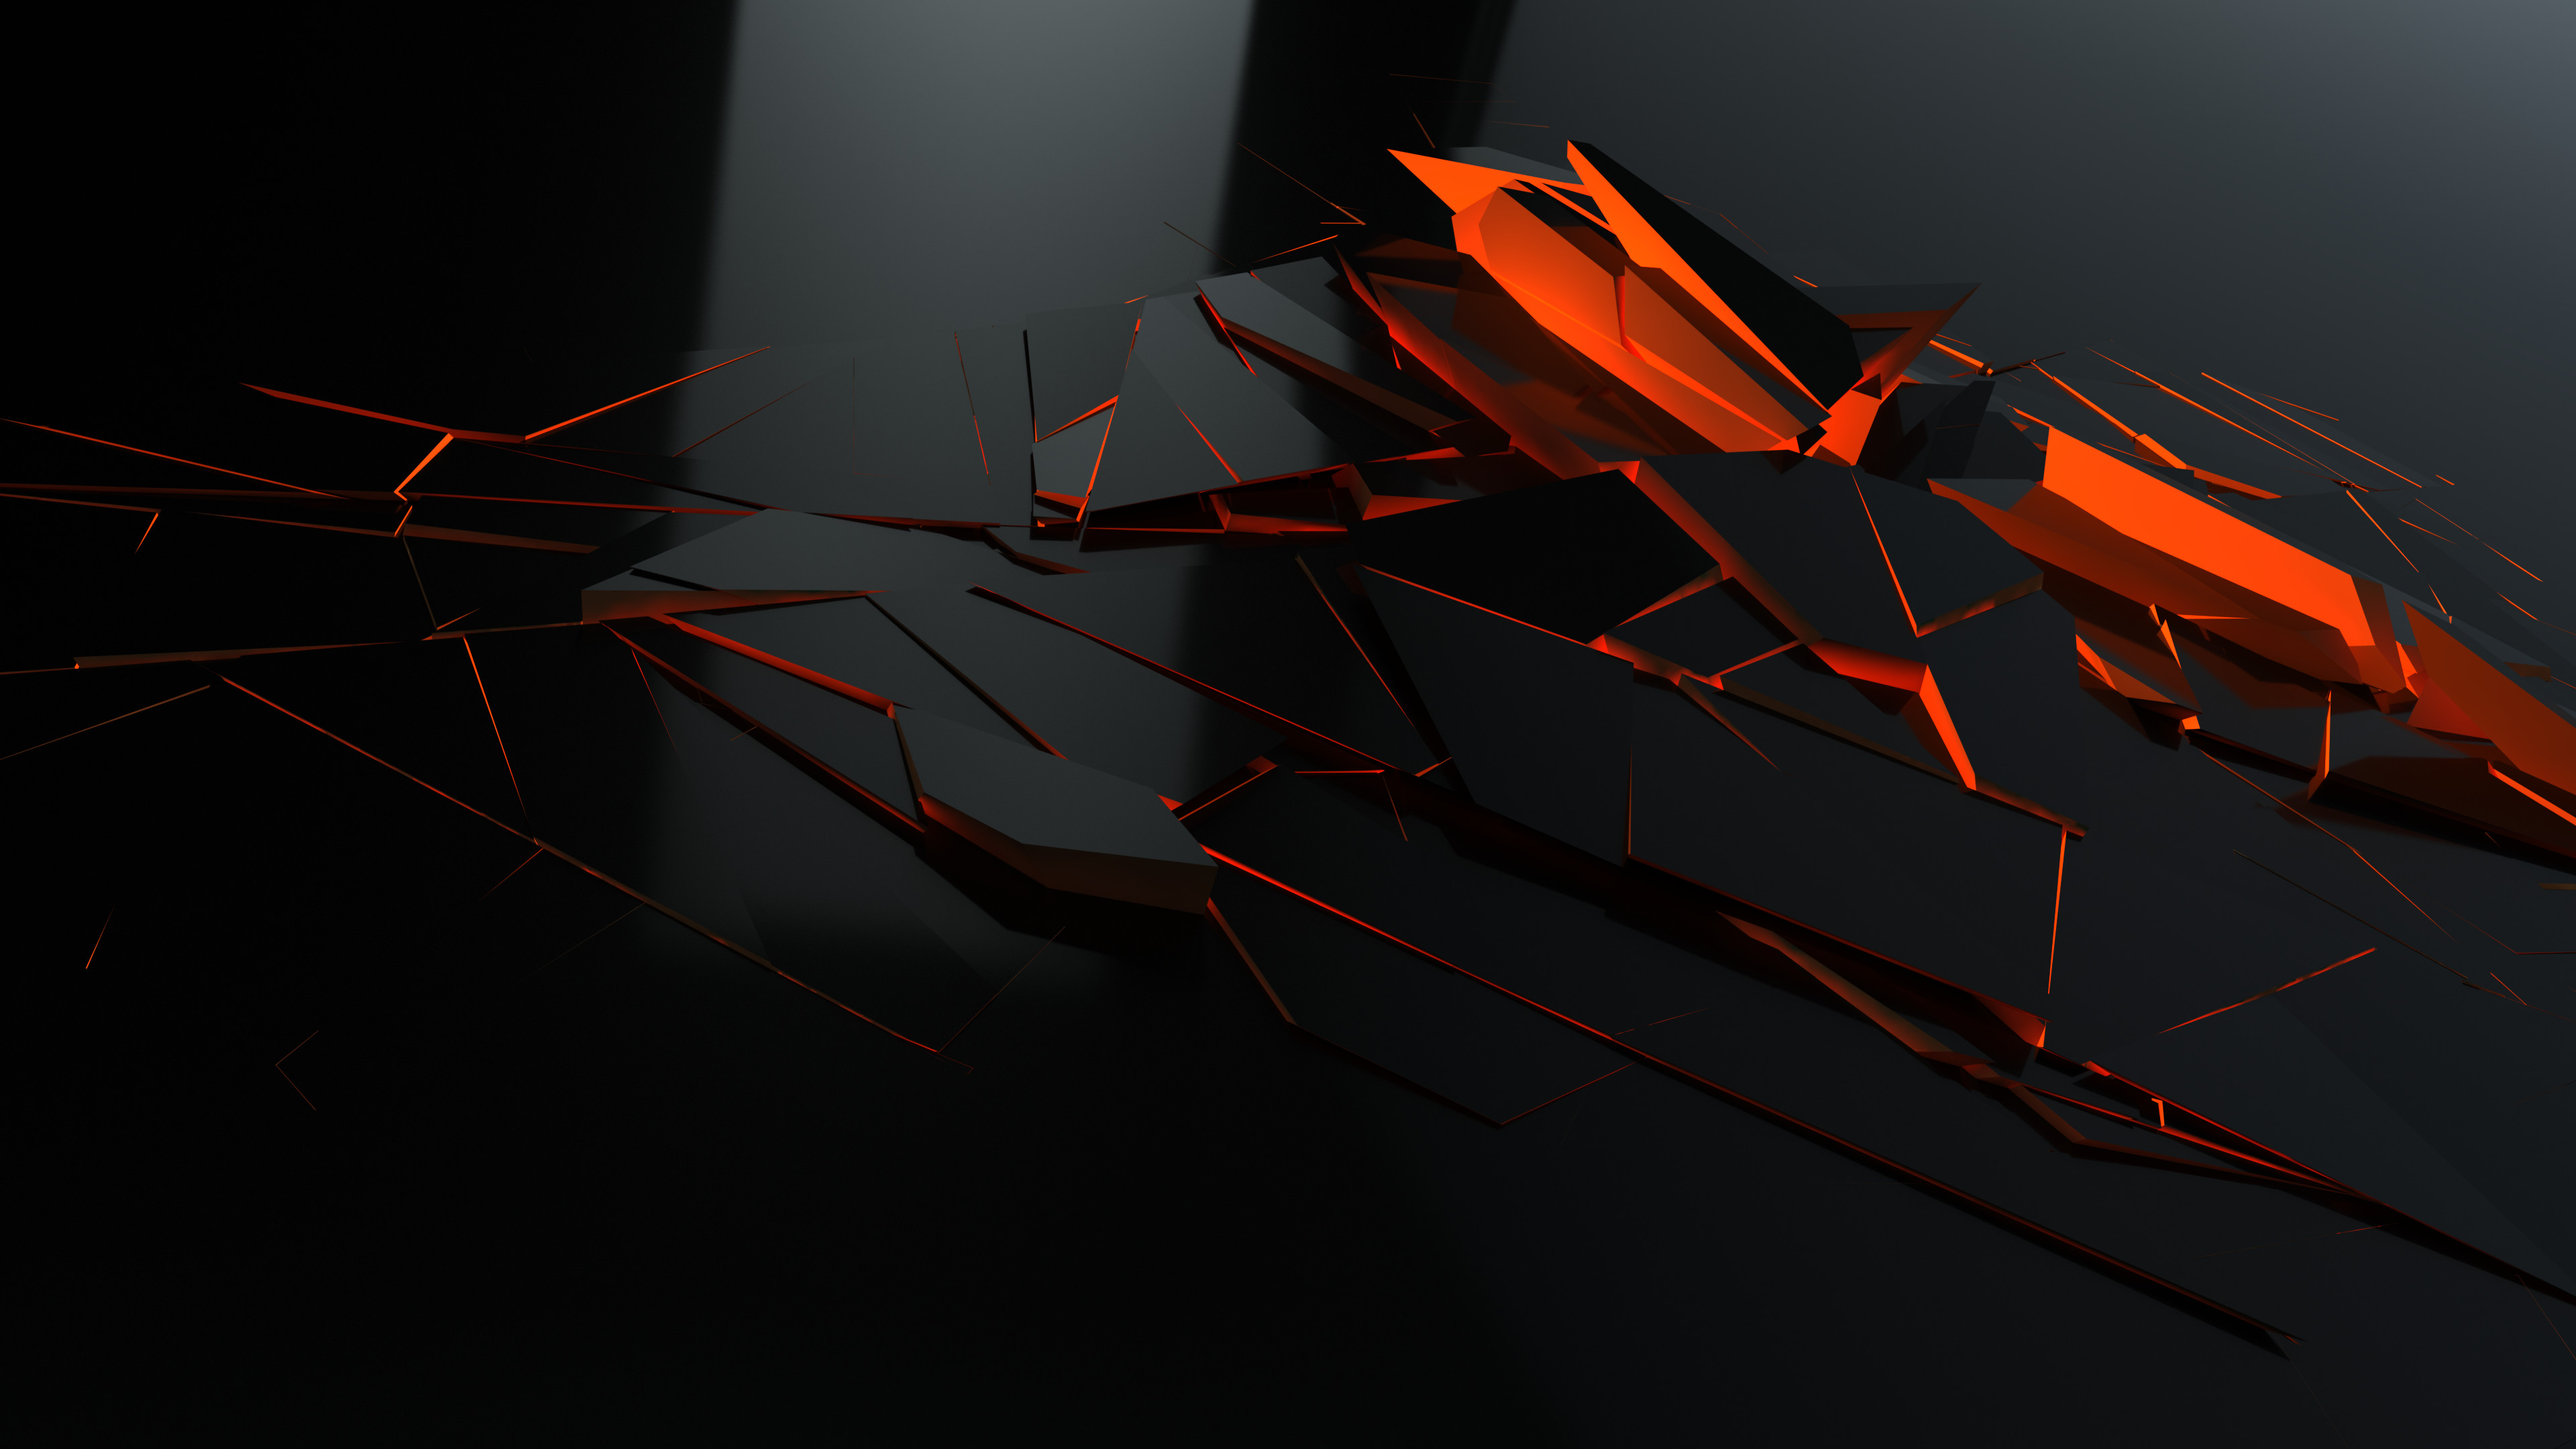 3840x2160 Download <b>Wallpaper</b> 3840x2400 Abstract, <b>Black